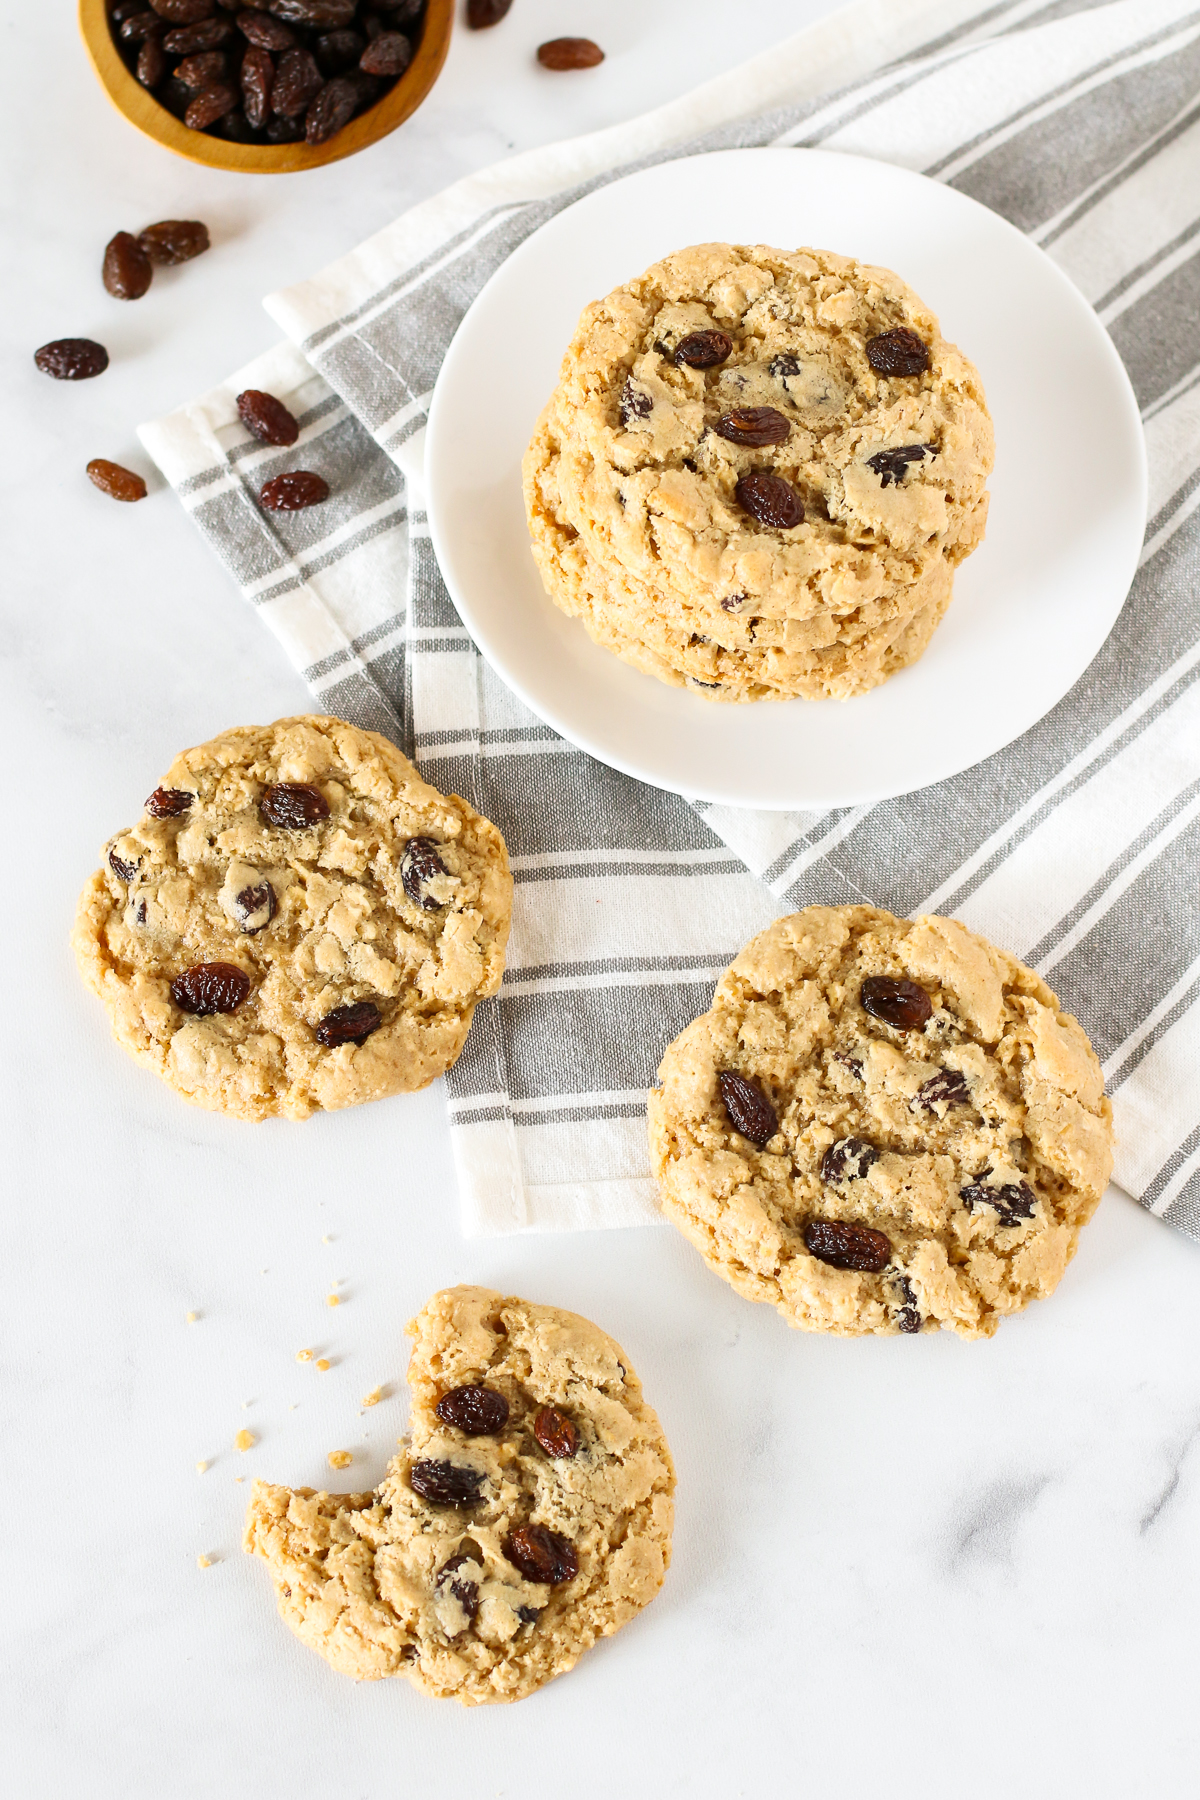 Gluten Free Vegan Oatmeal Raisin Cookies. Chewy oatmeal cookies, with a touch of cinnamon and the perfect amount of sweet raisins.